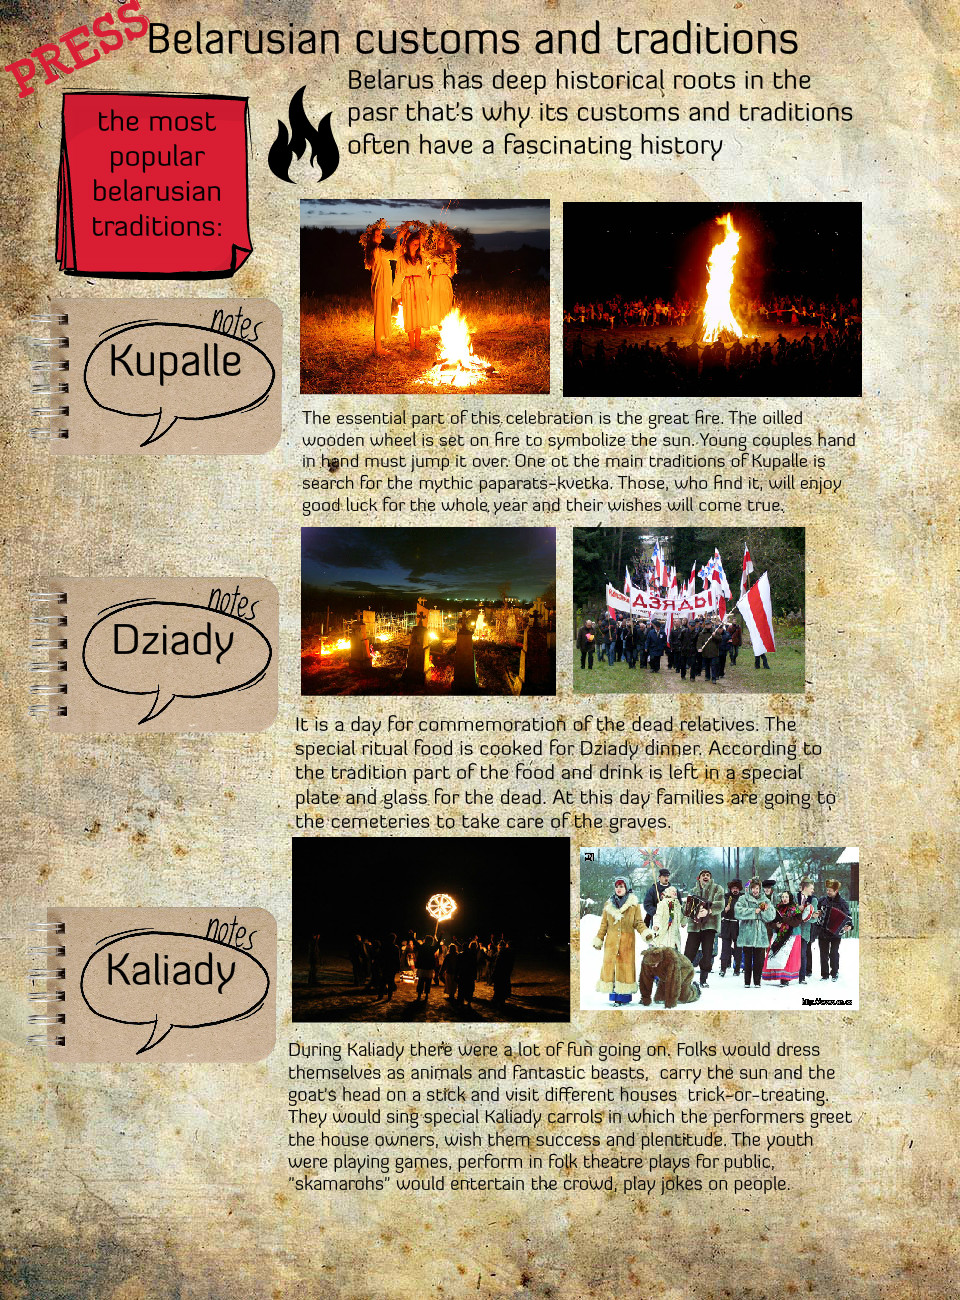 Belarusian customs and traditions